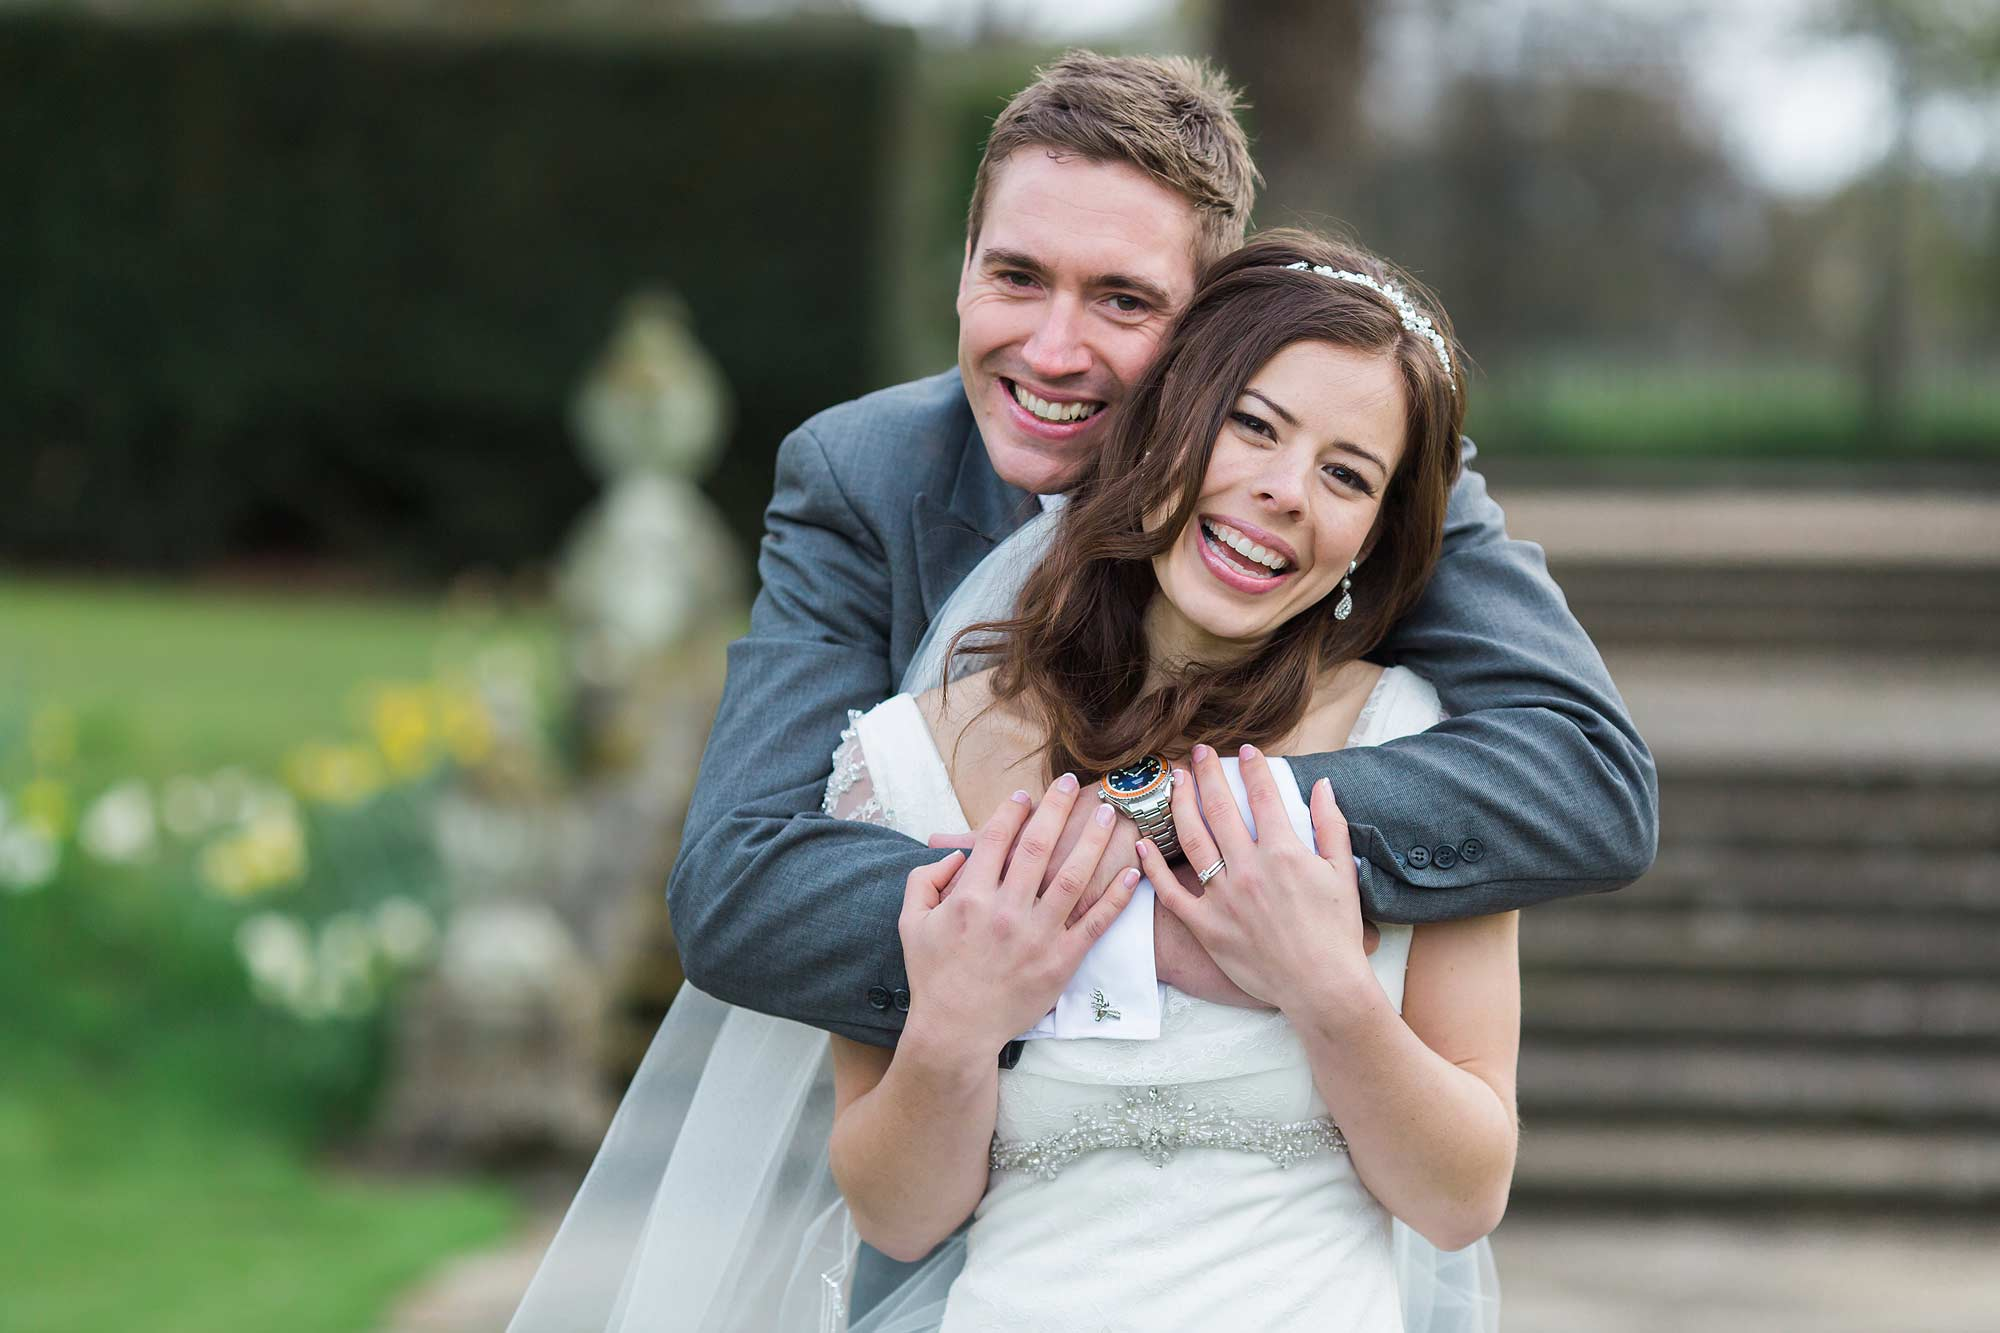 Amy and Jack pose for a picture to commemorate their Hengrave Hall Wedding.